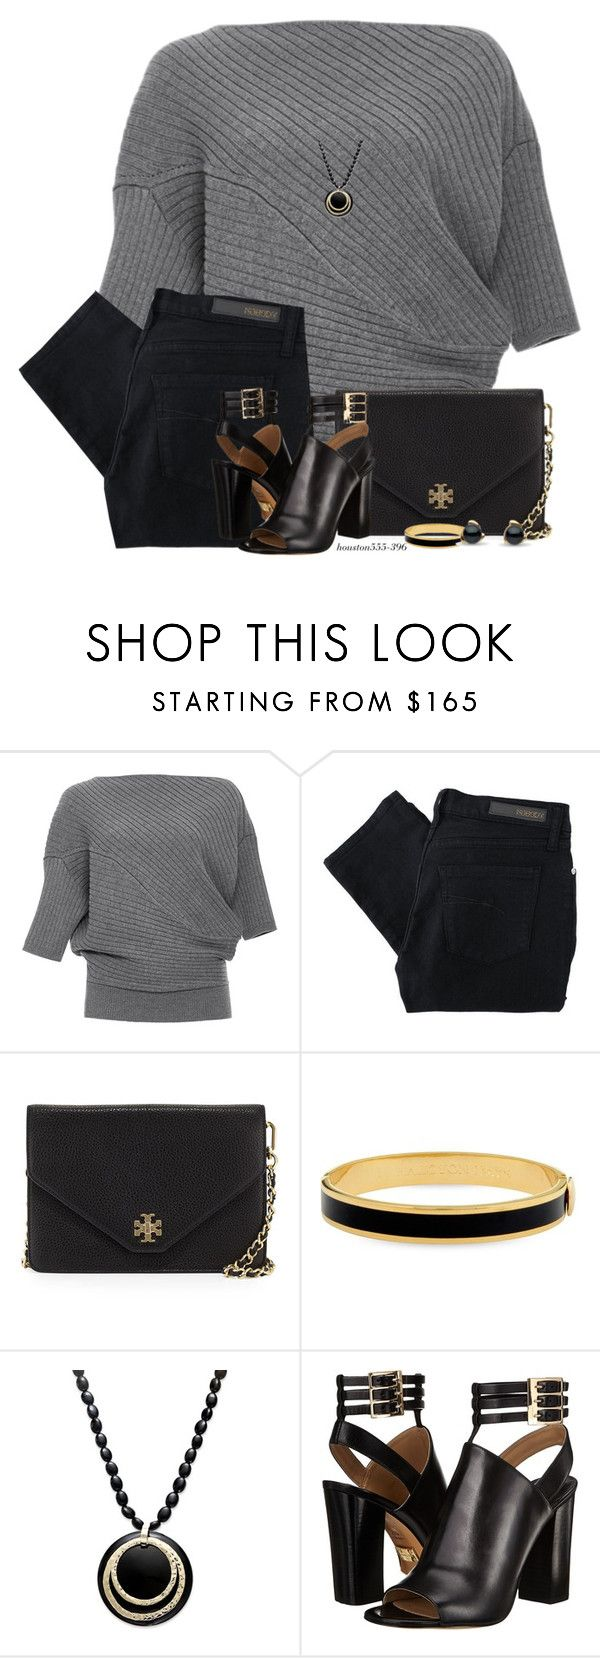 """""""Tuesday Morning"""" by houston555-396 ❤ liked on Polyvore featuring J.W. Anderson, Nobody Denim, Tory Burch, Halcyon Days and Michael Kors"""